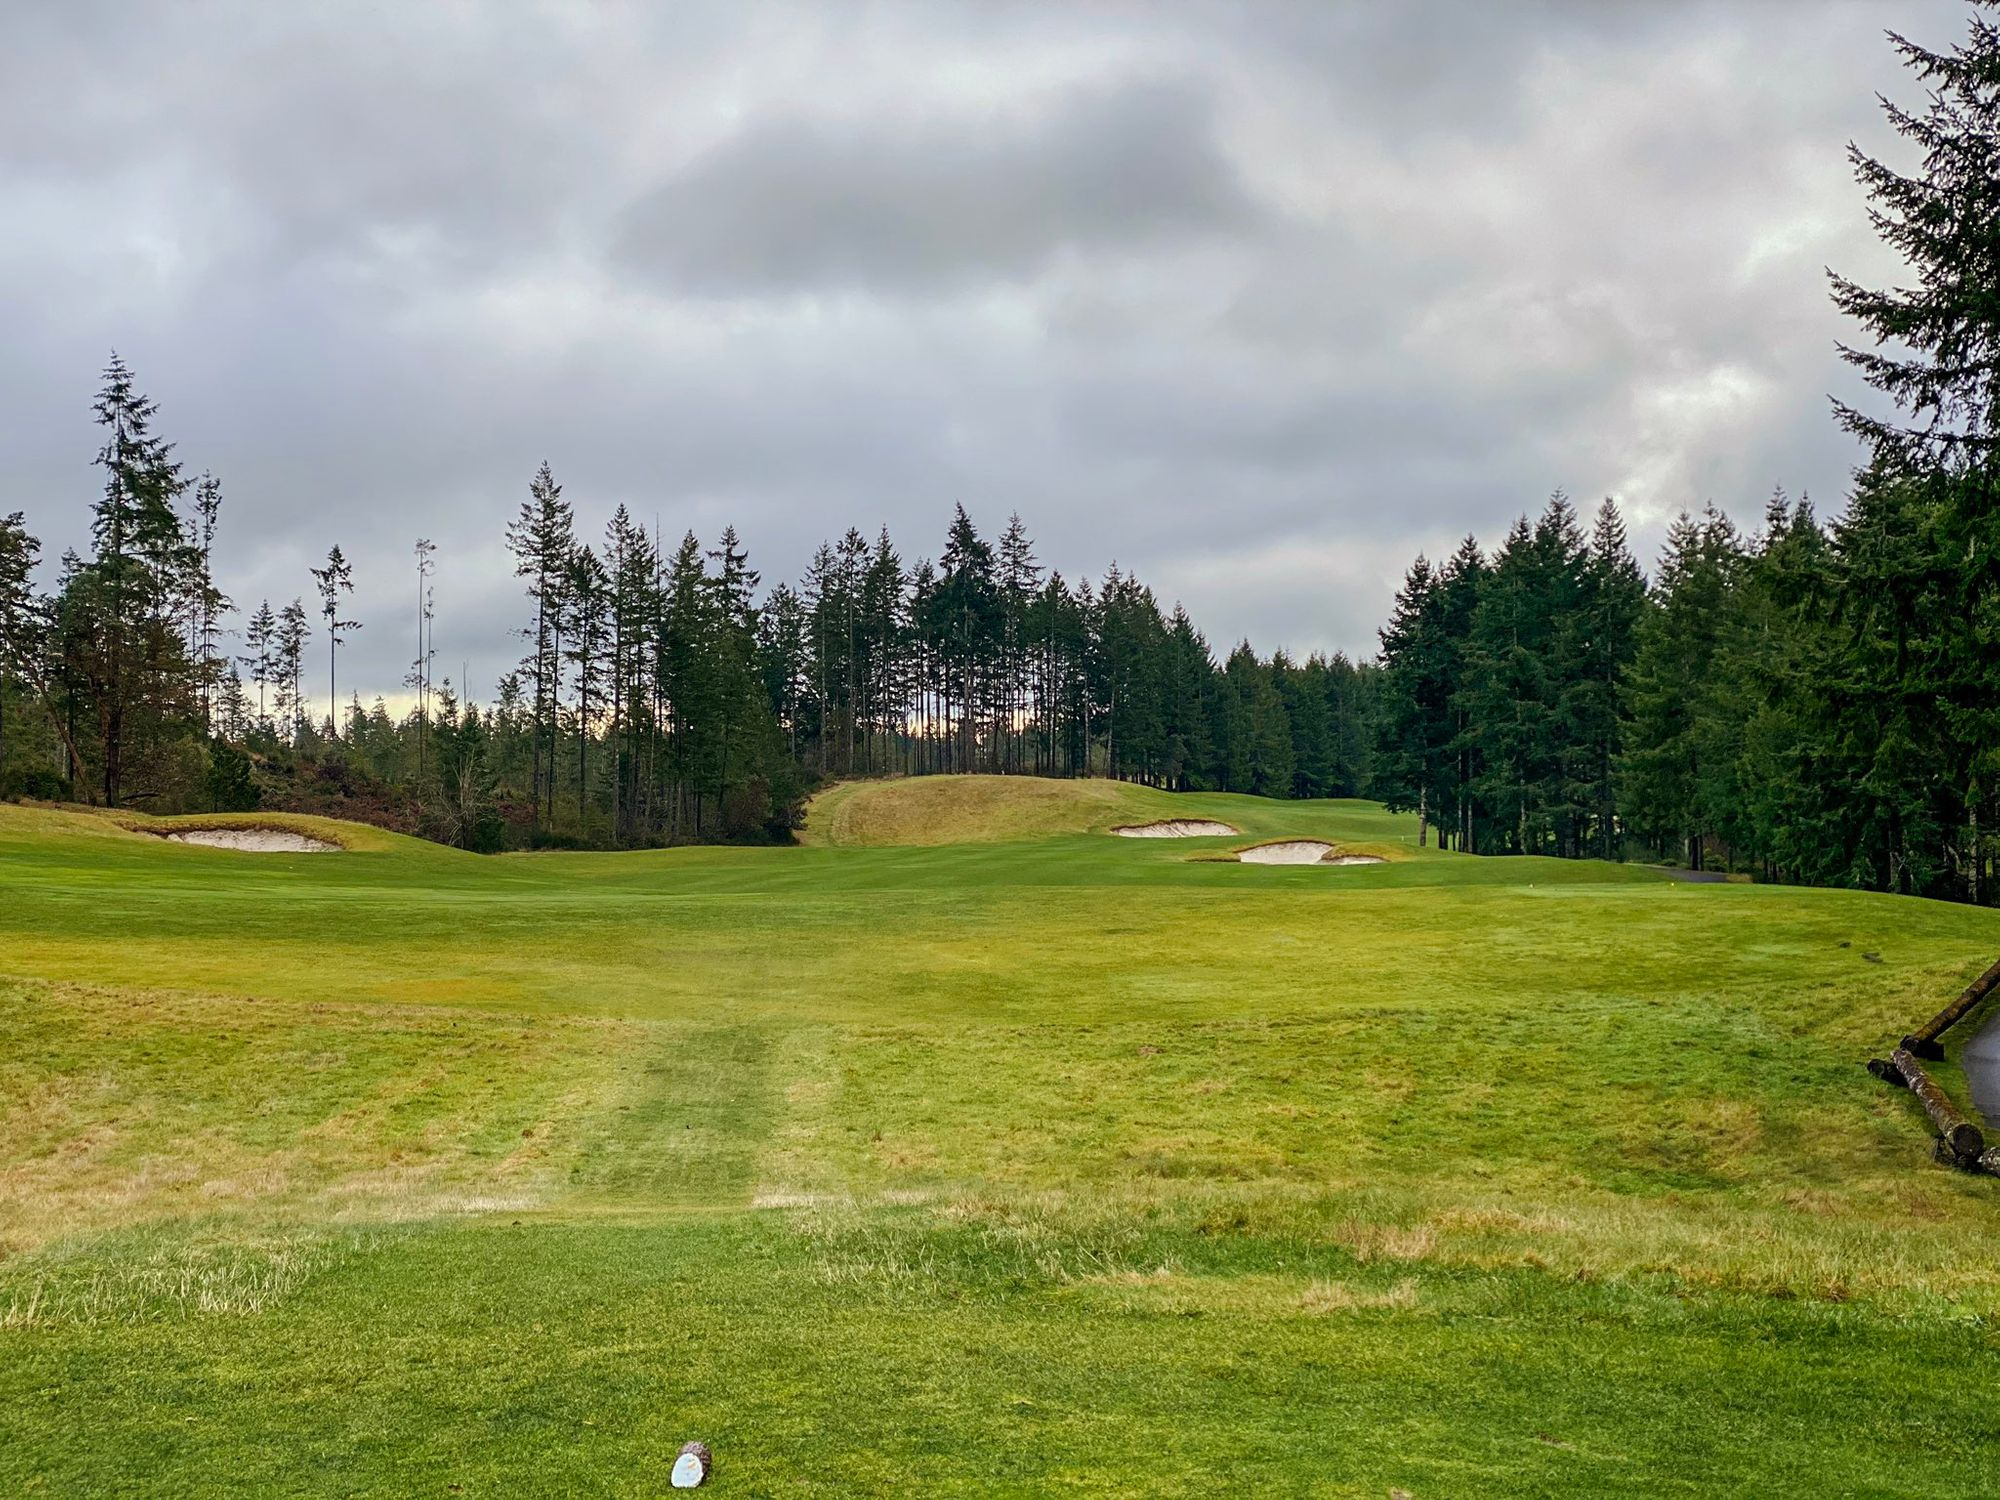 Trophy Lake offers tranquility, PNW beauty, and spacious fairways